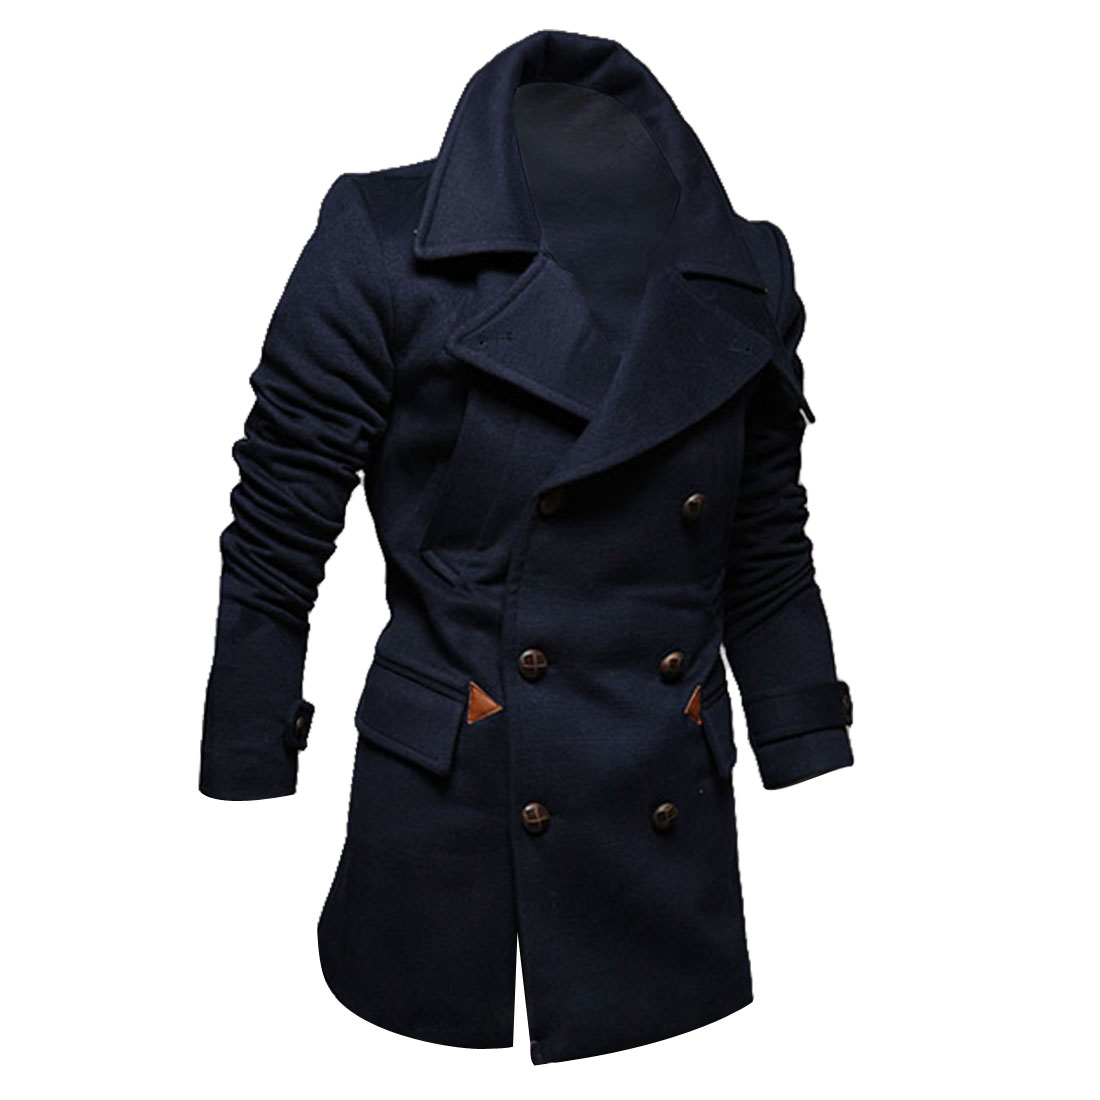 Men Convertible Collar Long Sleeve Soft Overcoat Navy Blue L